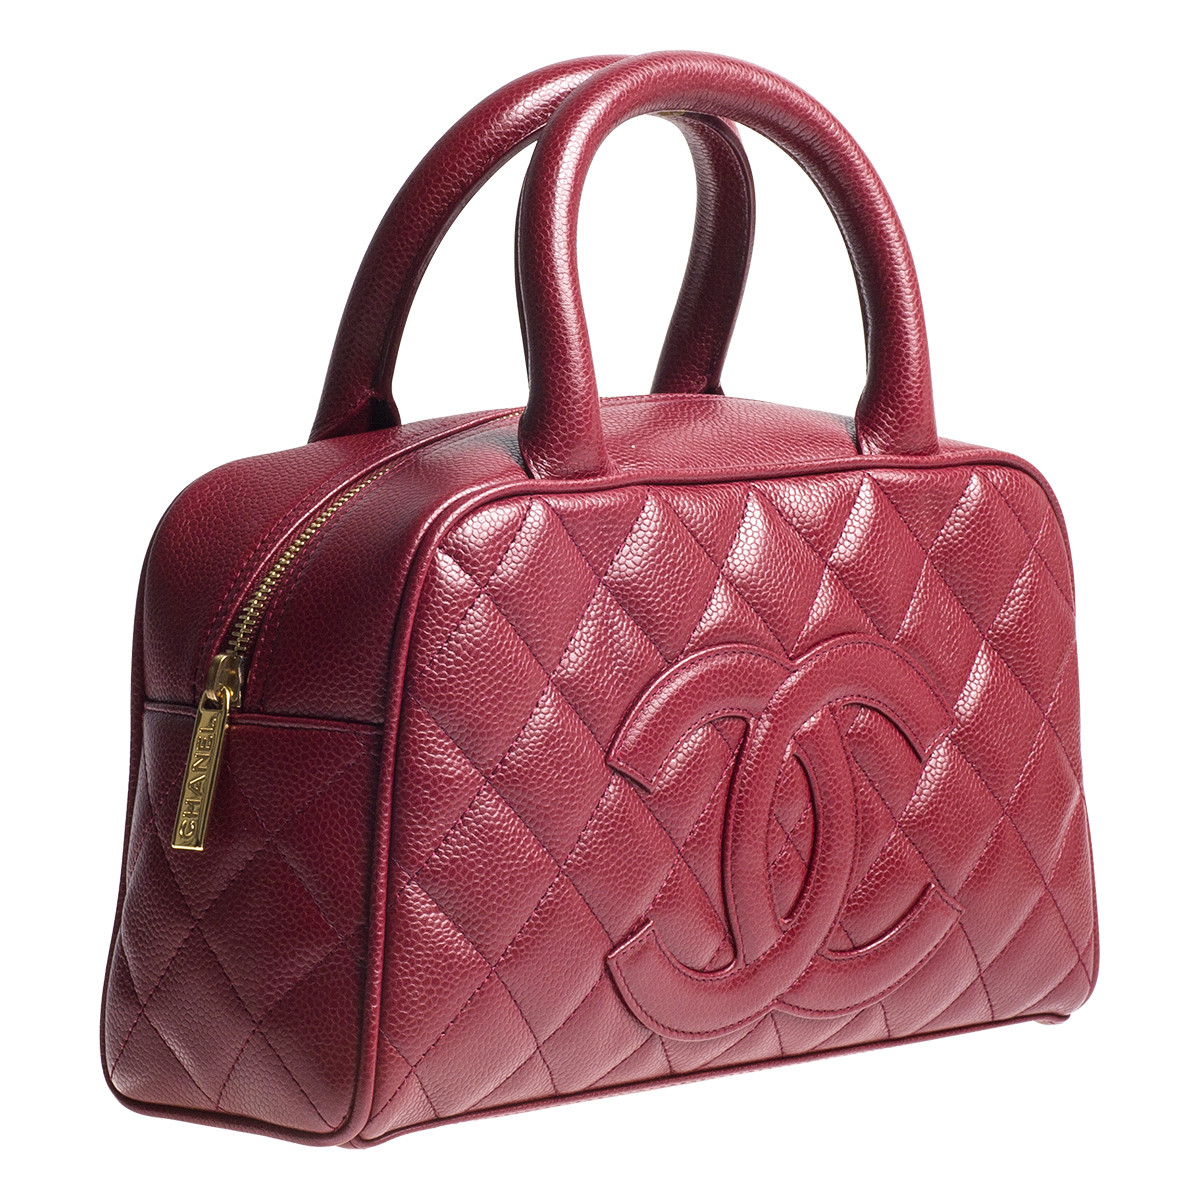 Vintage Chanel Quilted Red Caviar Leather Bowler Handbag